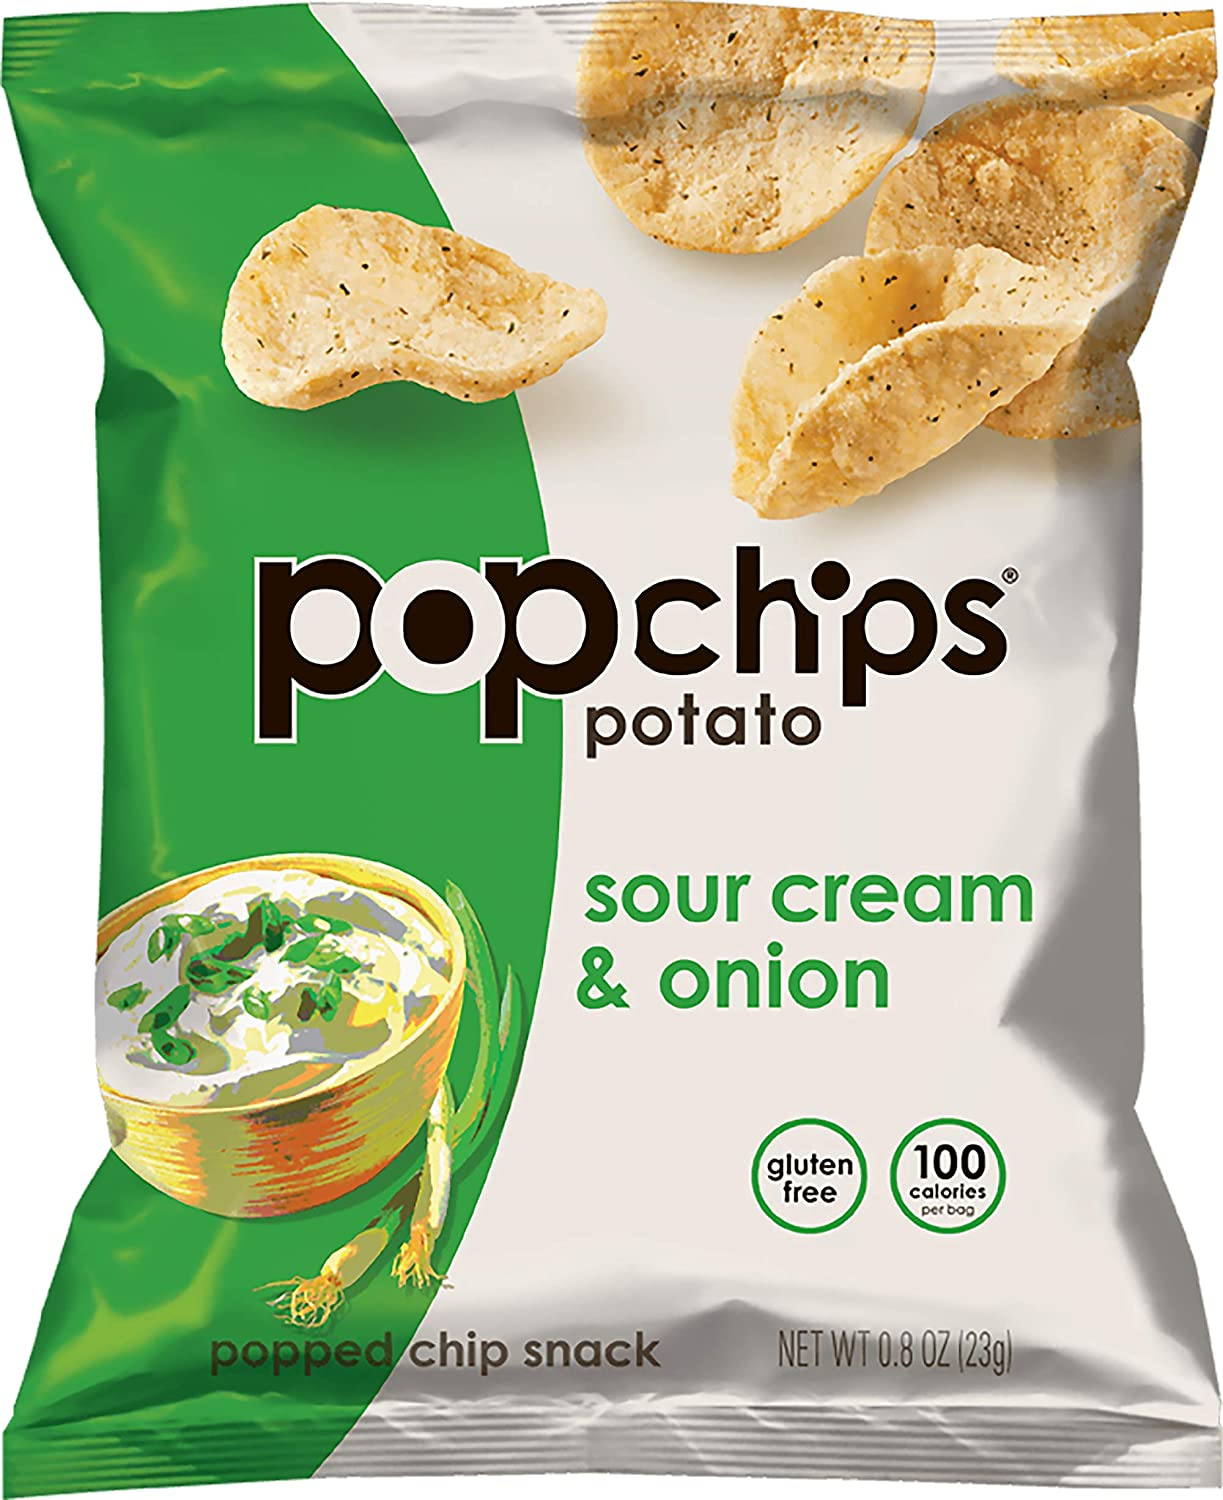 Popchips Potato Chips, Sour Cream and Onion, 0.8 Ounce (Pack of 24)